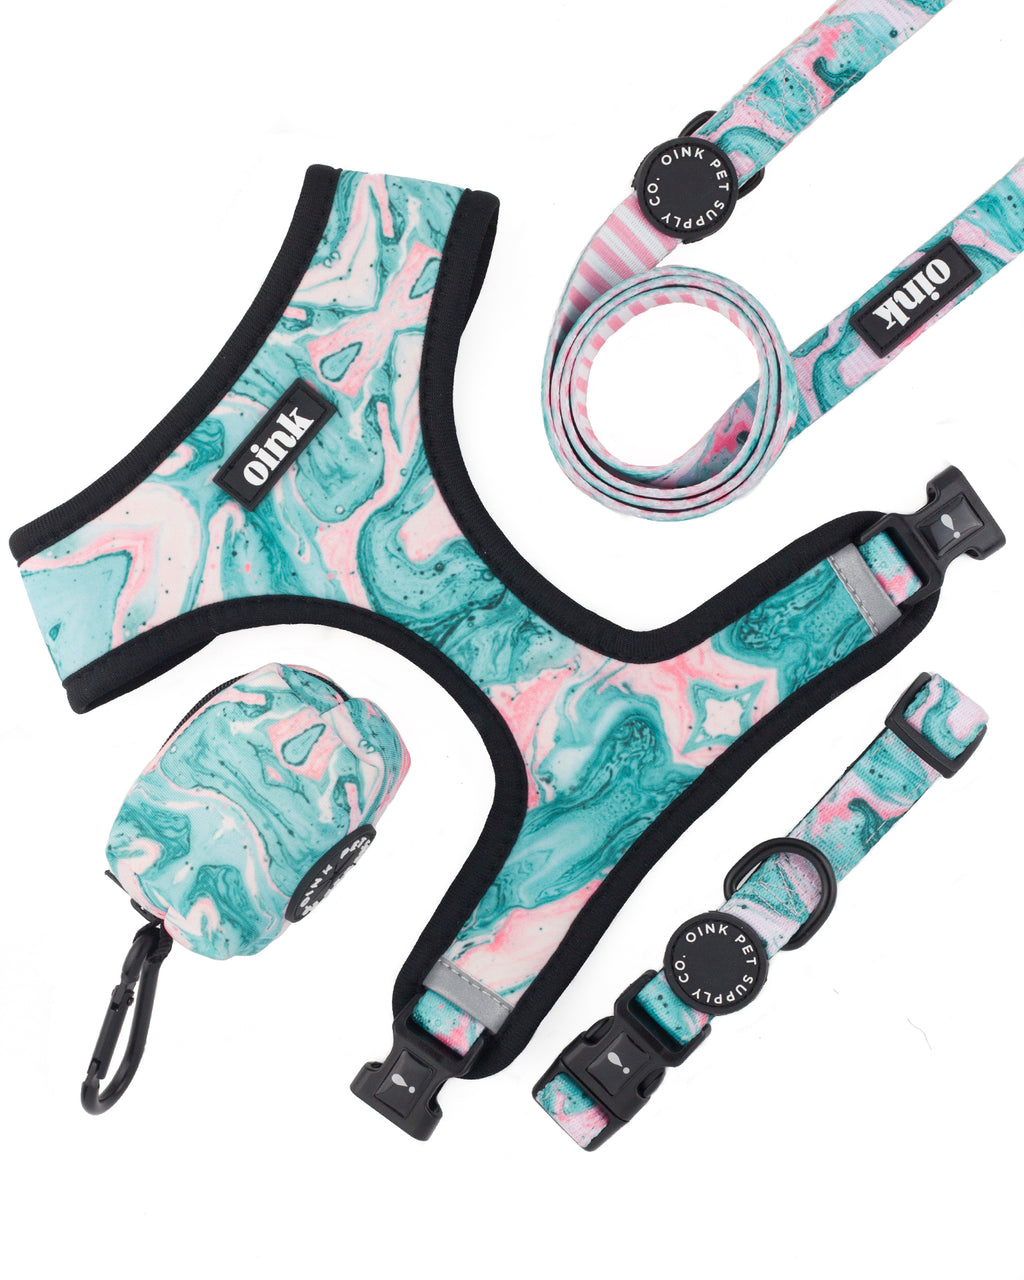 Oink Reversible Harness - Comfort Collar - Comfort Leash - Poop Bag Holder - poolside